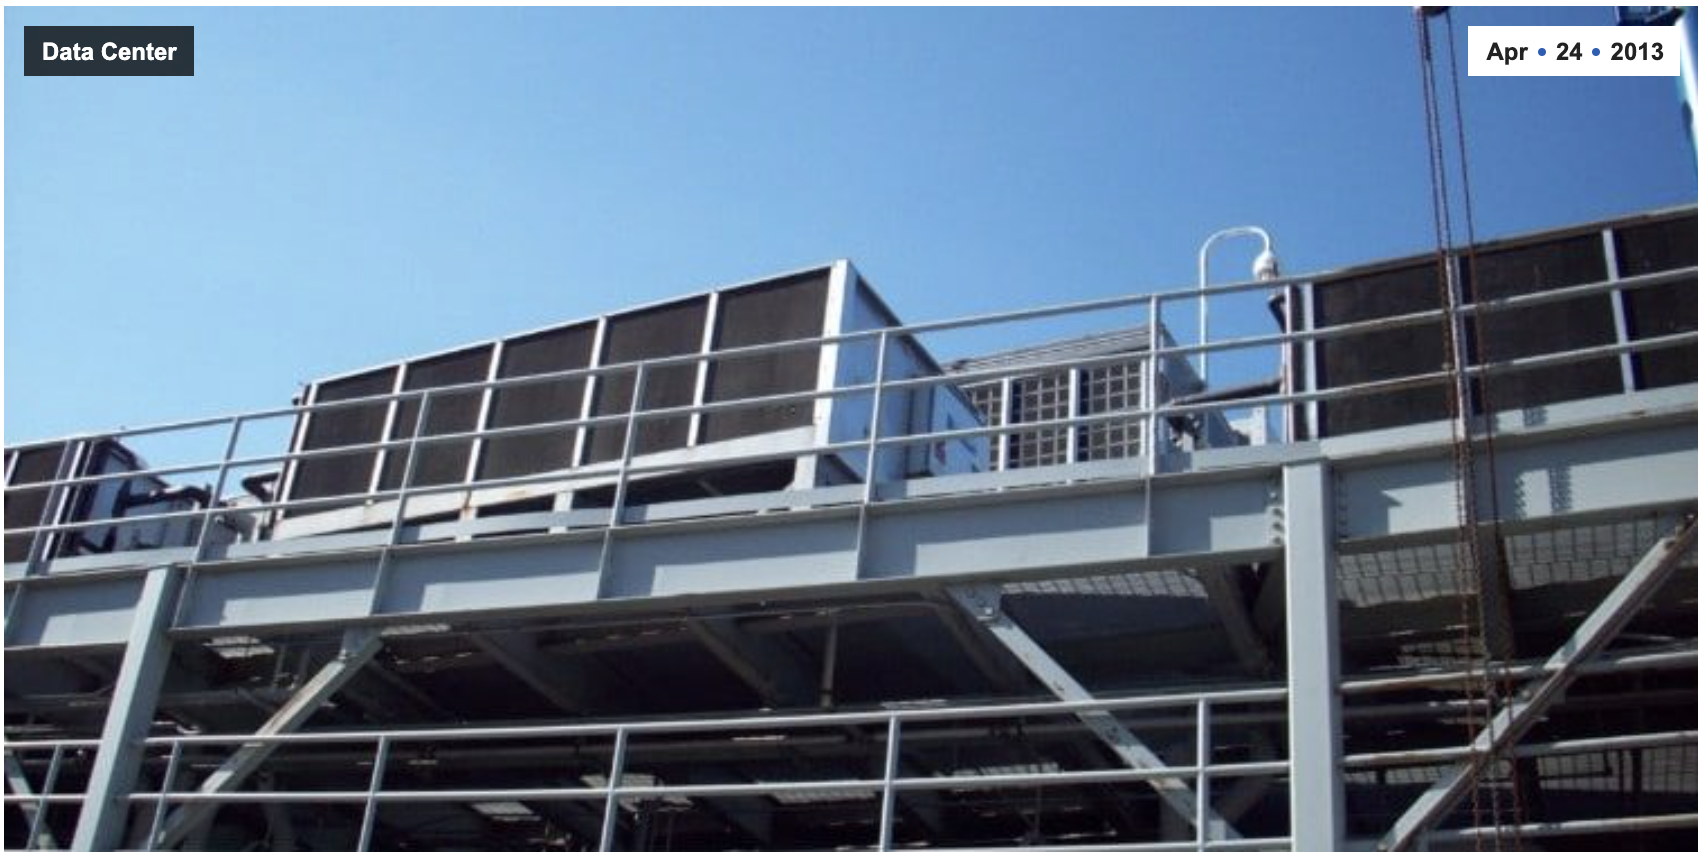 Data Center uses MeeFog™ for AC Condenser Cooling